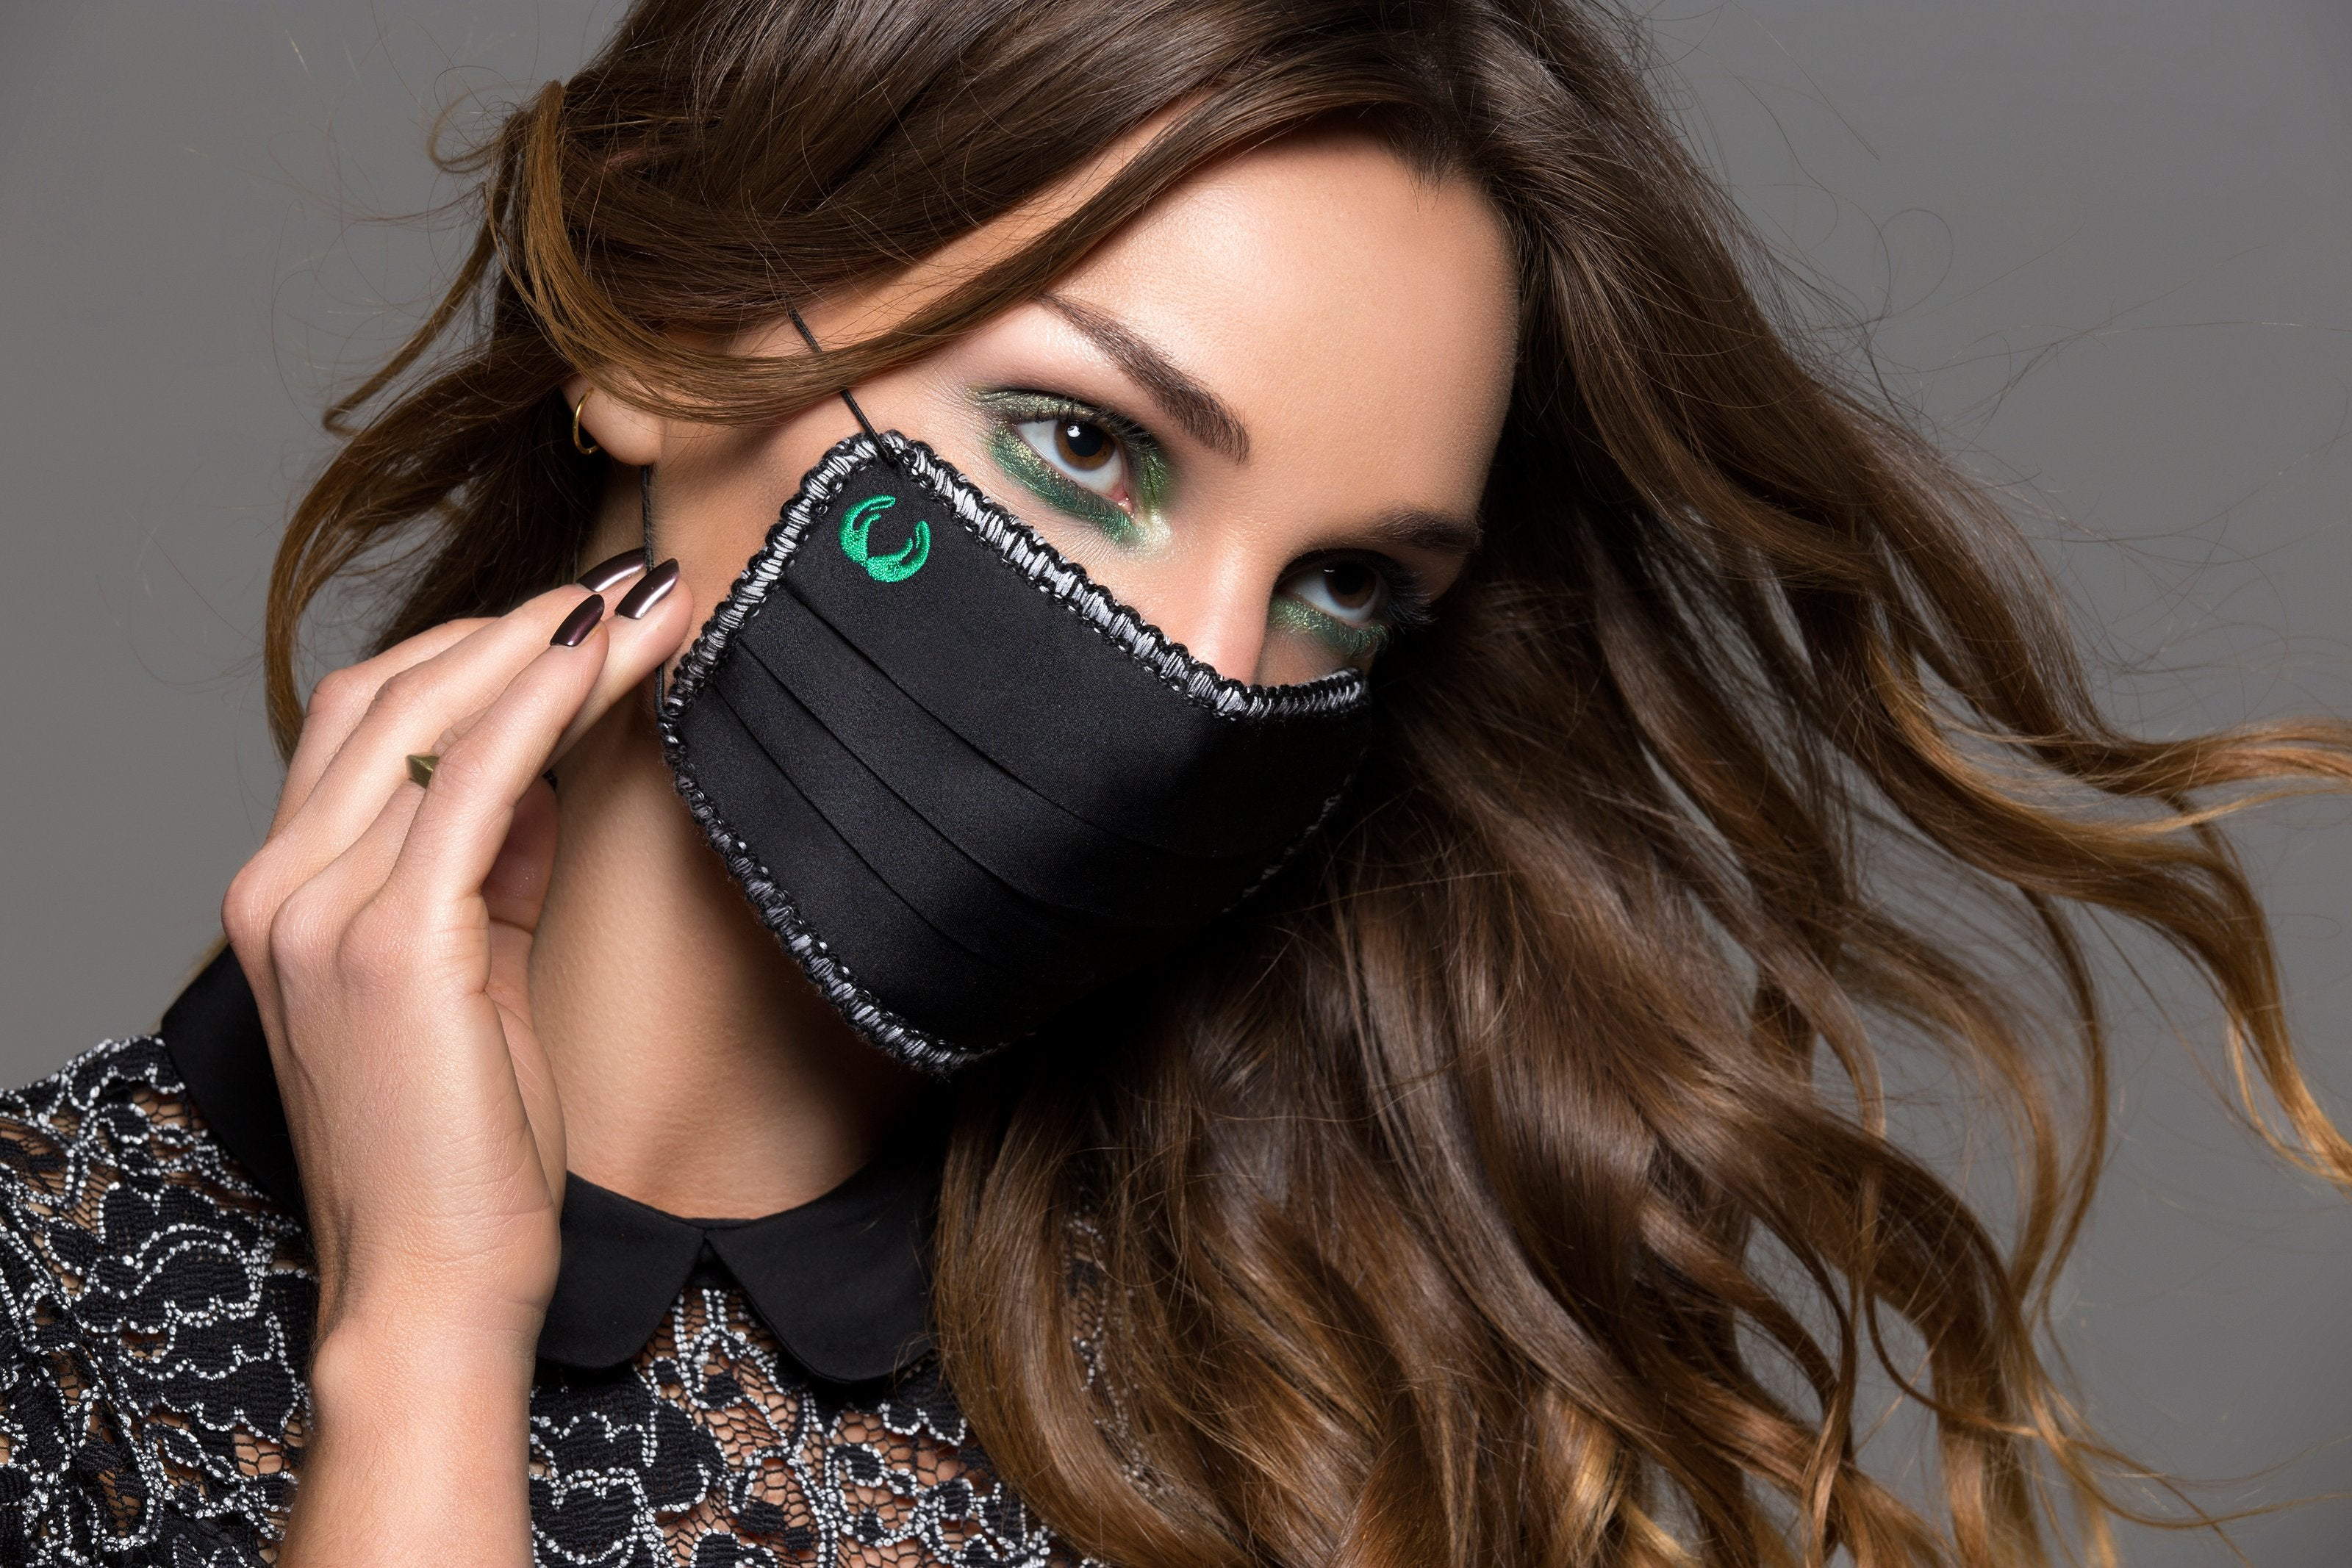 Tallix - Luxury Face Mask Collection